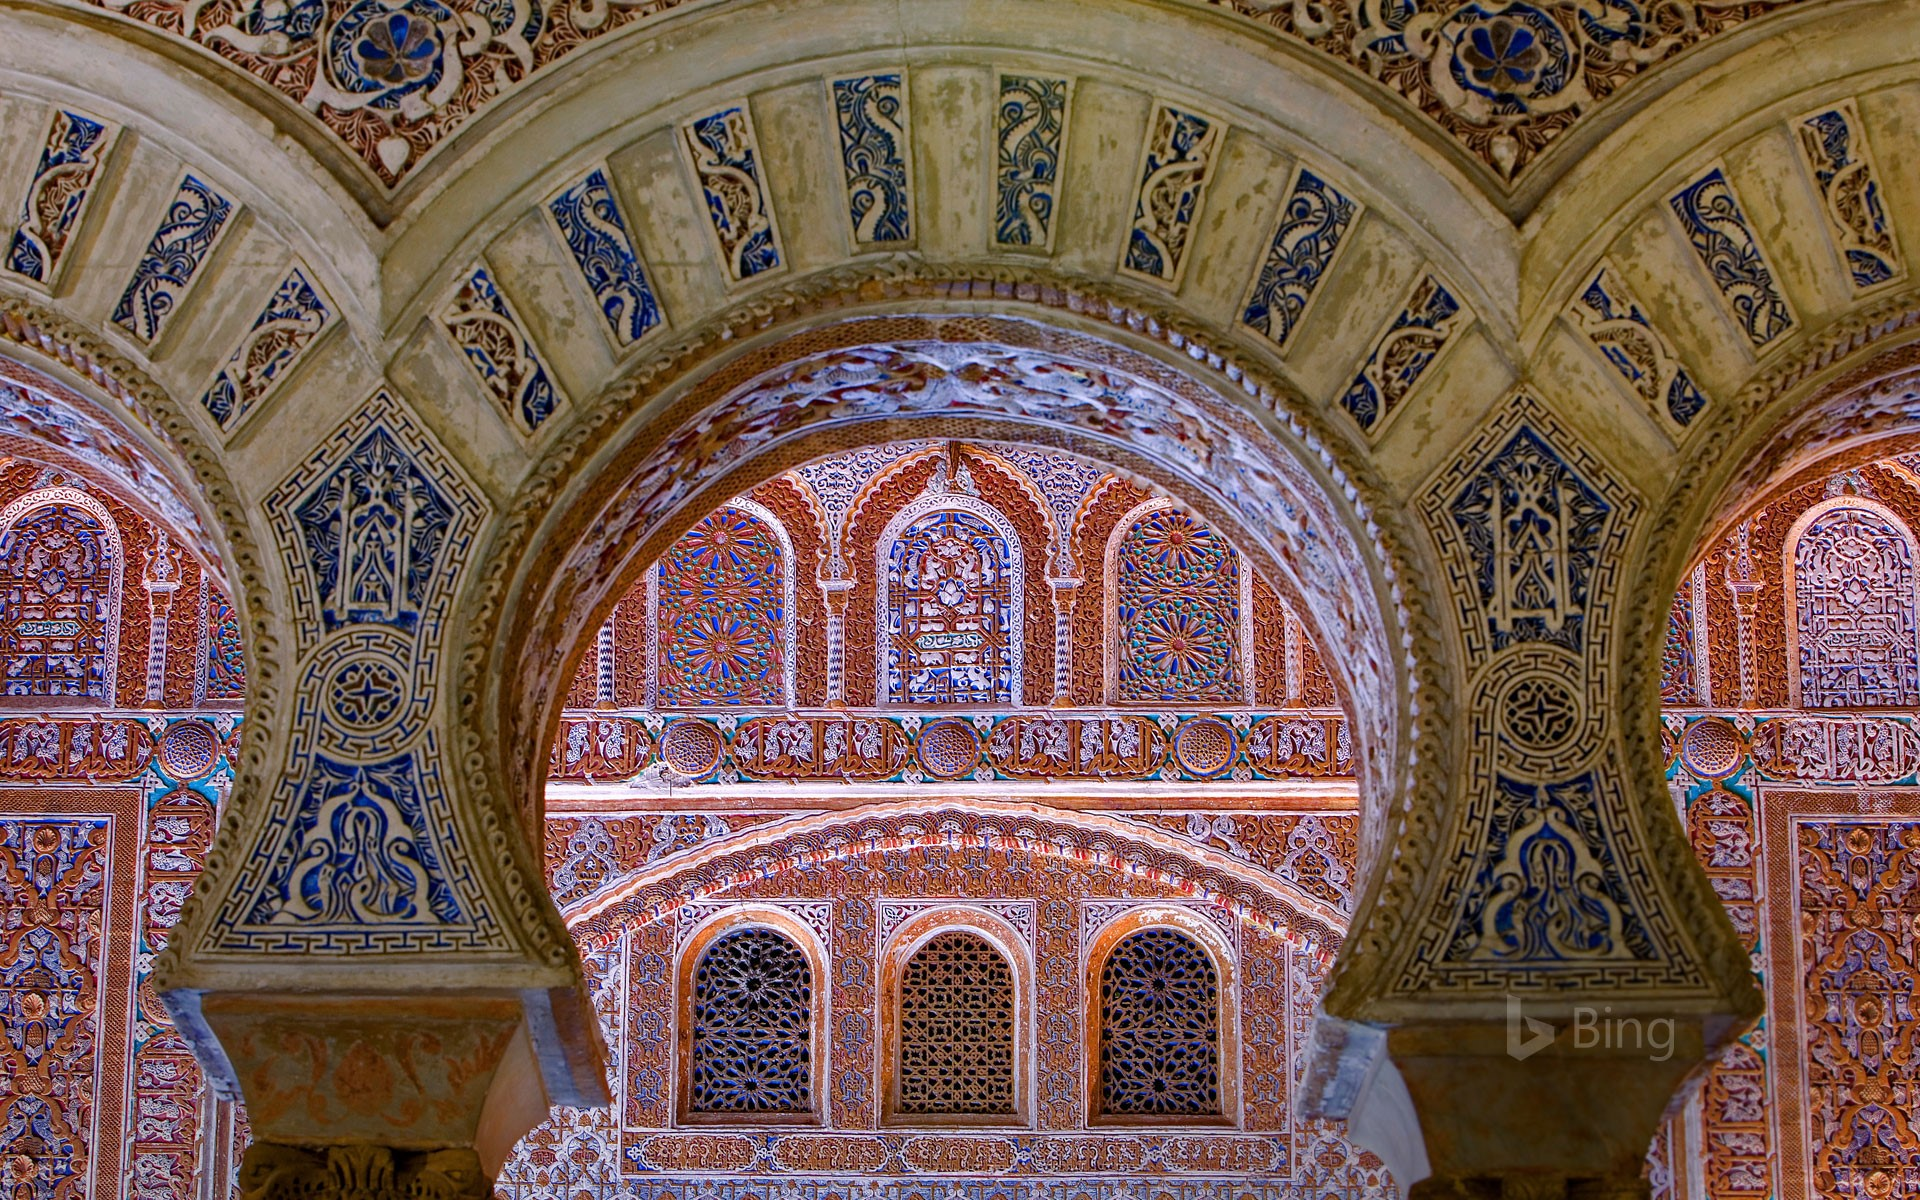 Ambassador's Hall in the Alcázar of Seville, Spain